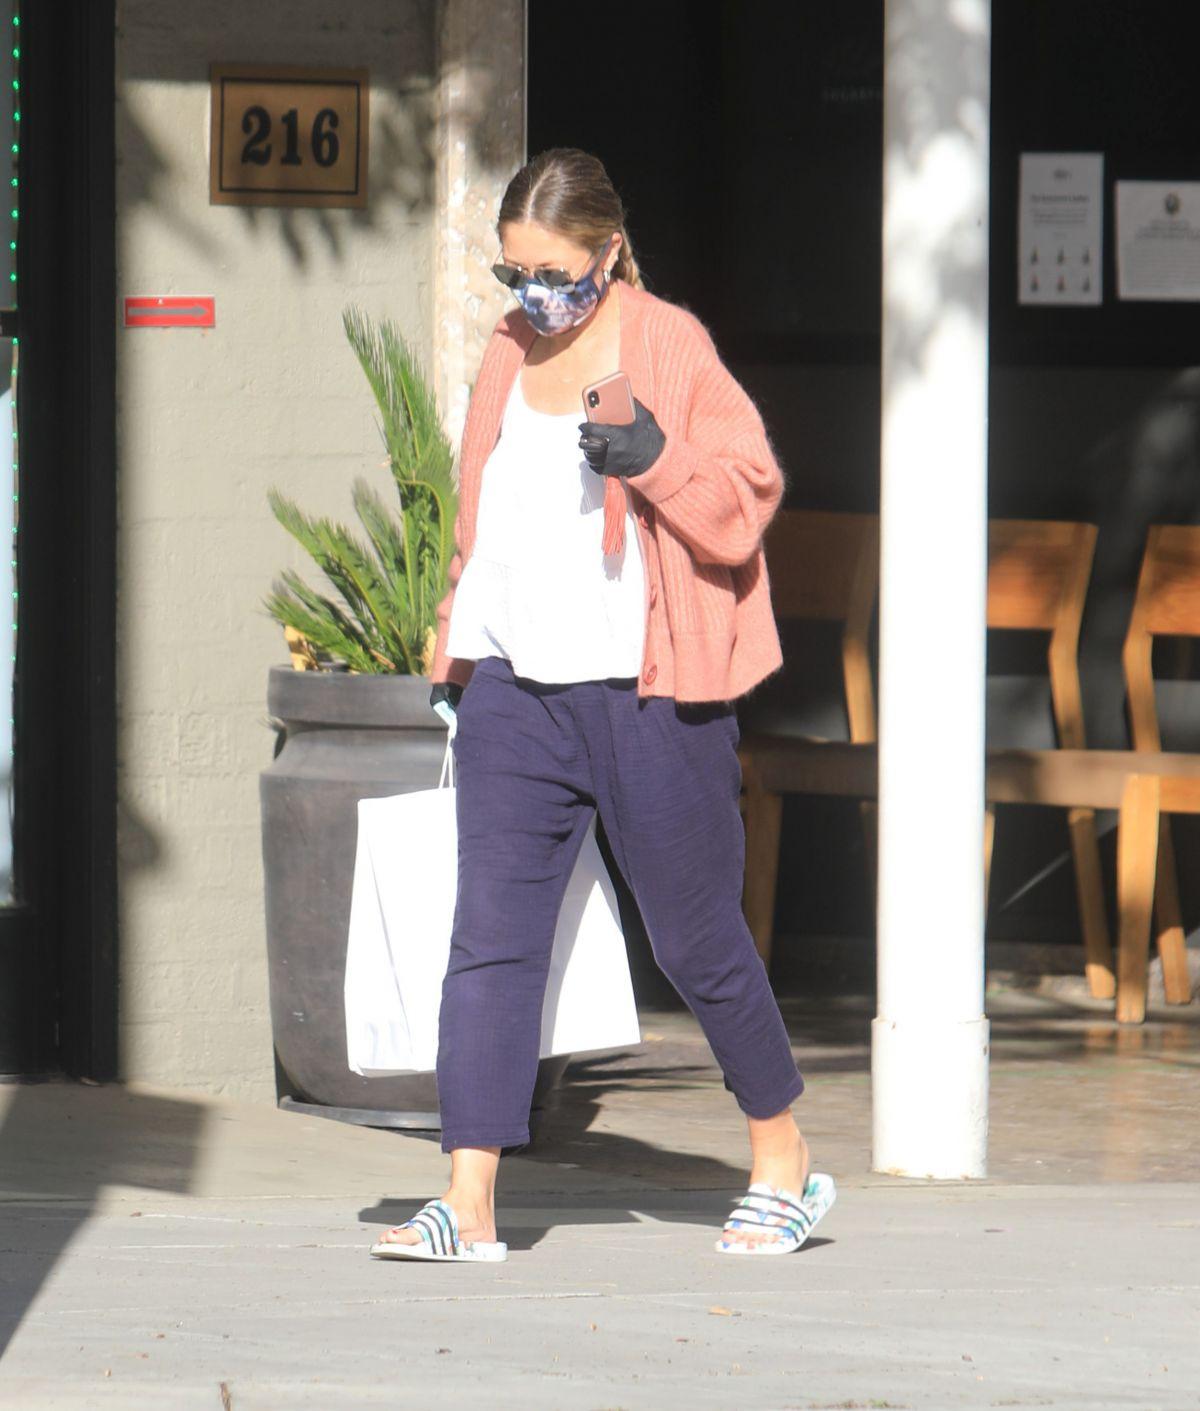 Rebecca Gayheart Wearing Mask and Gloves Out in Bevery Hills, 05.06.2020 11